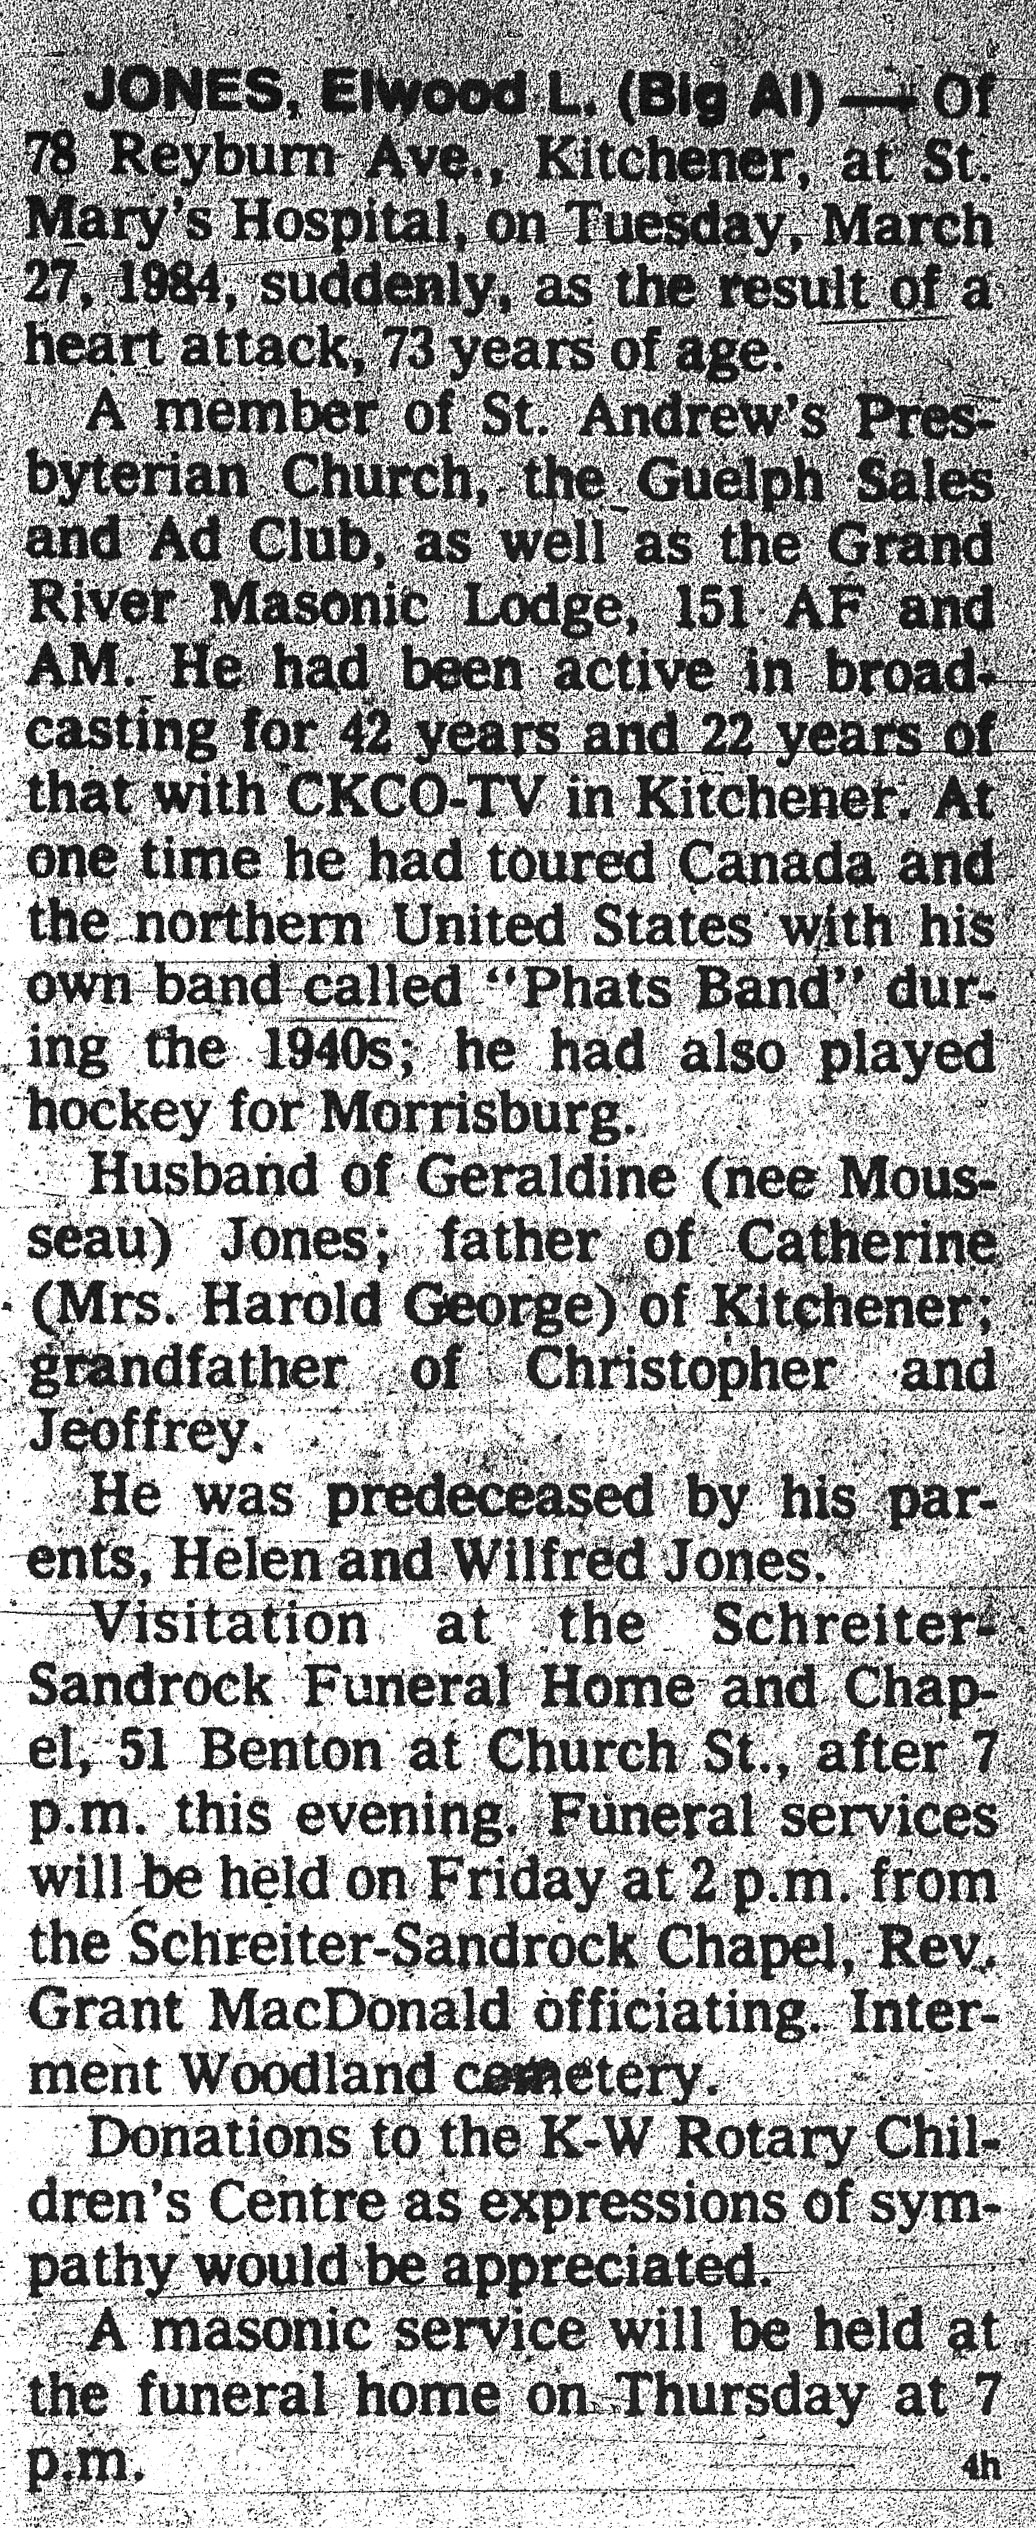 Jones, Elwood L. - March 27, 1984 - Obit